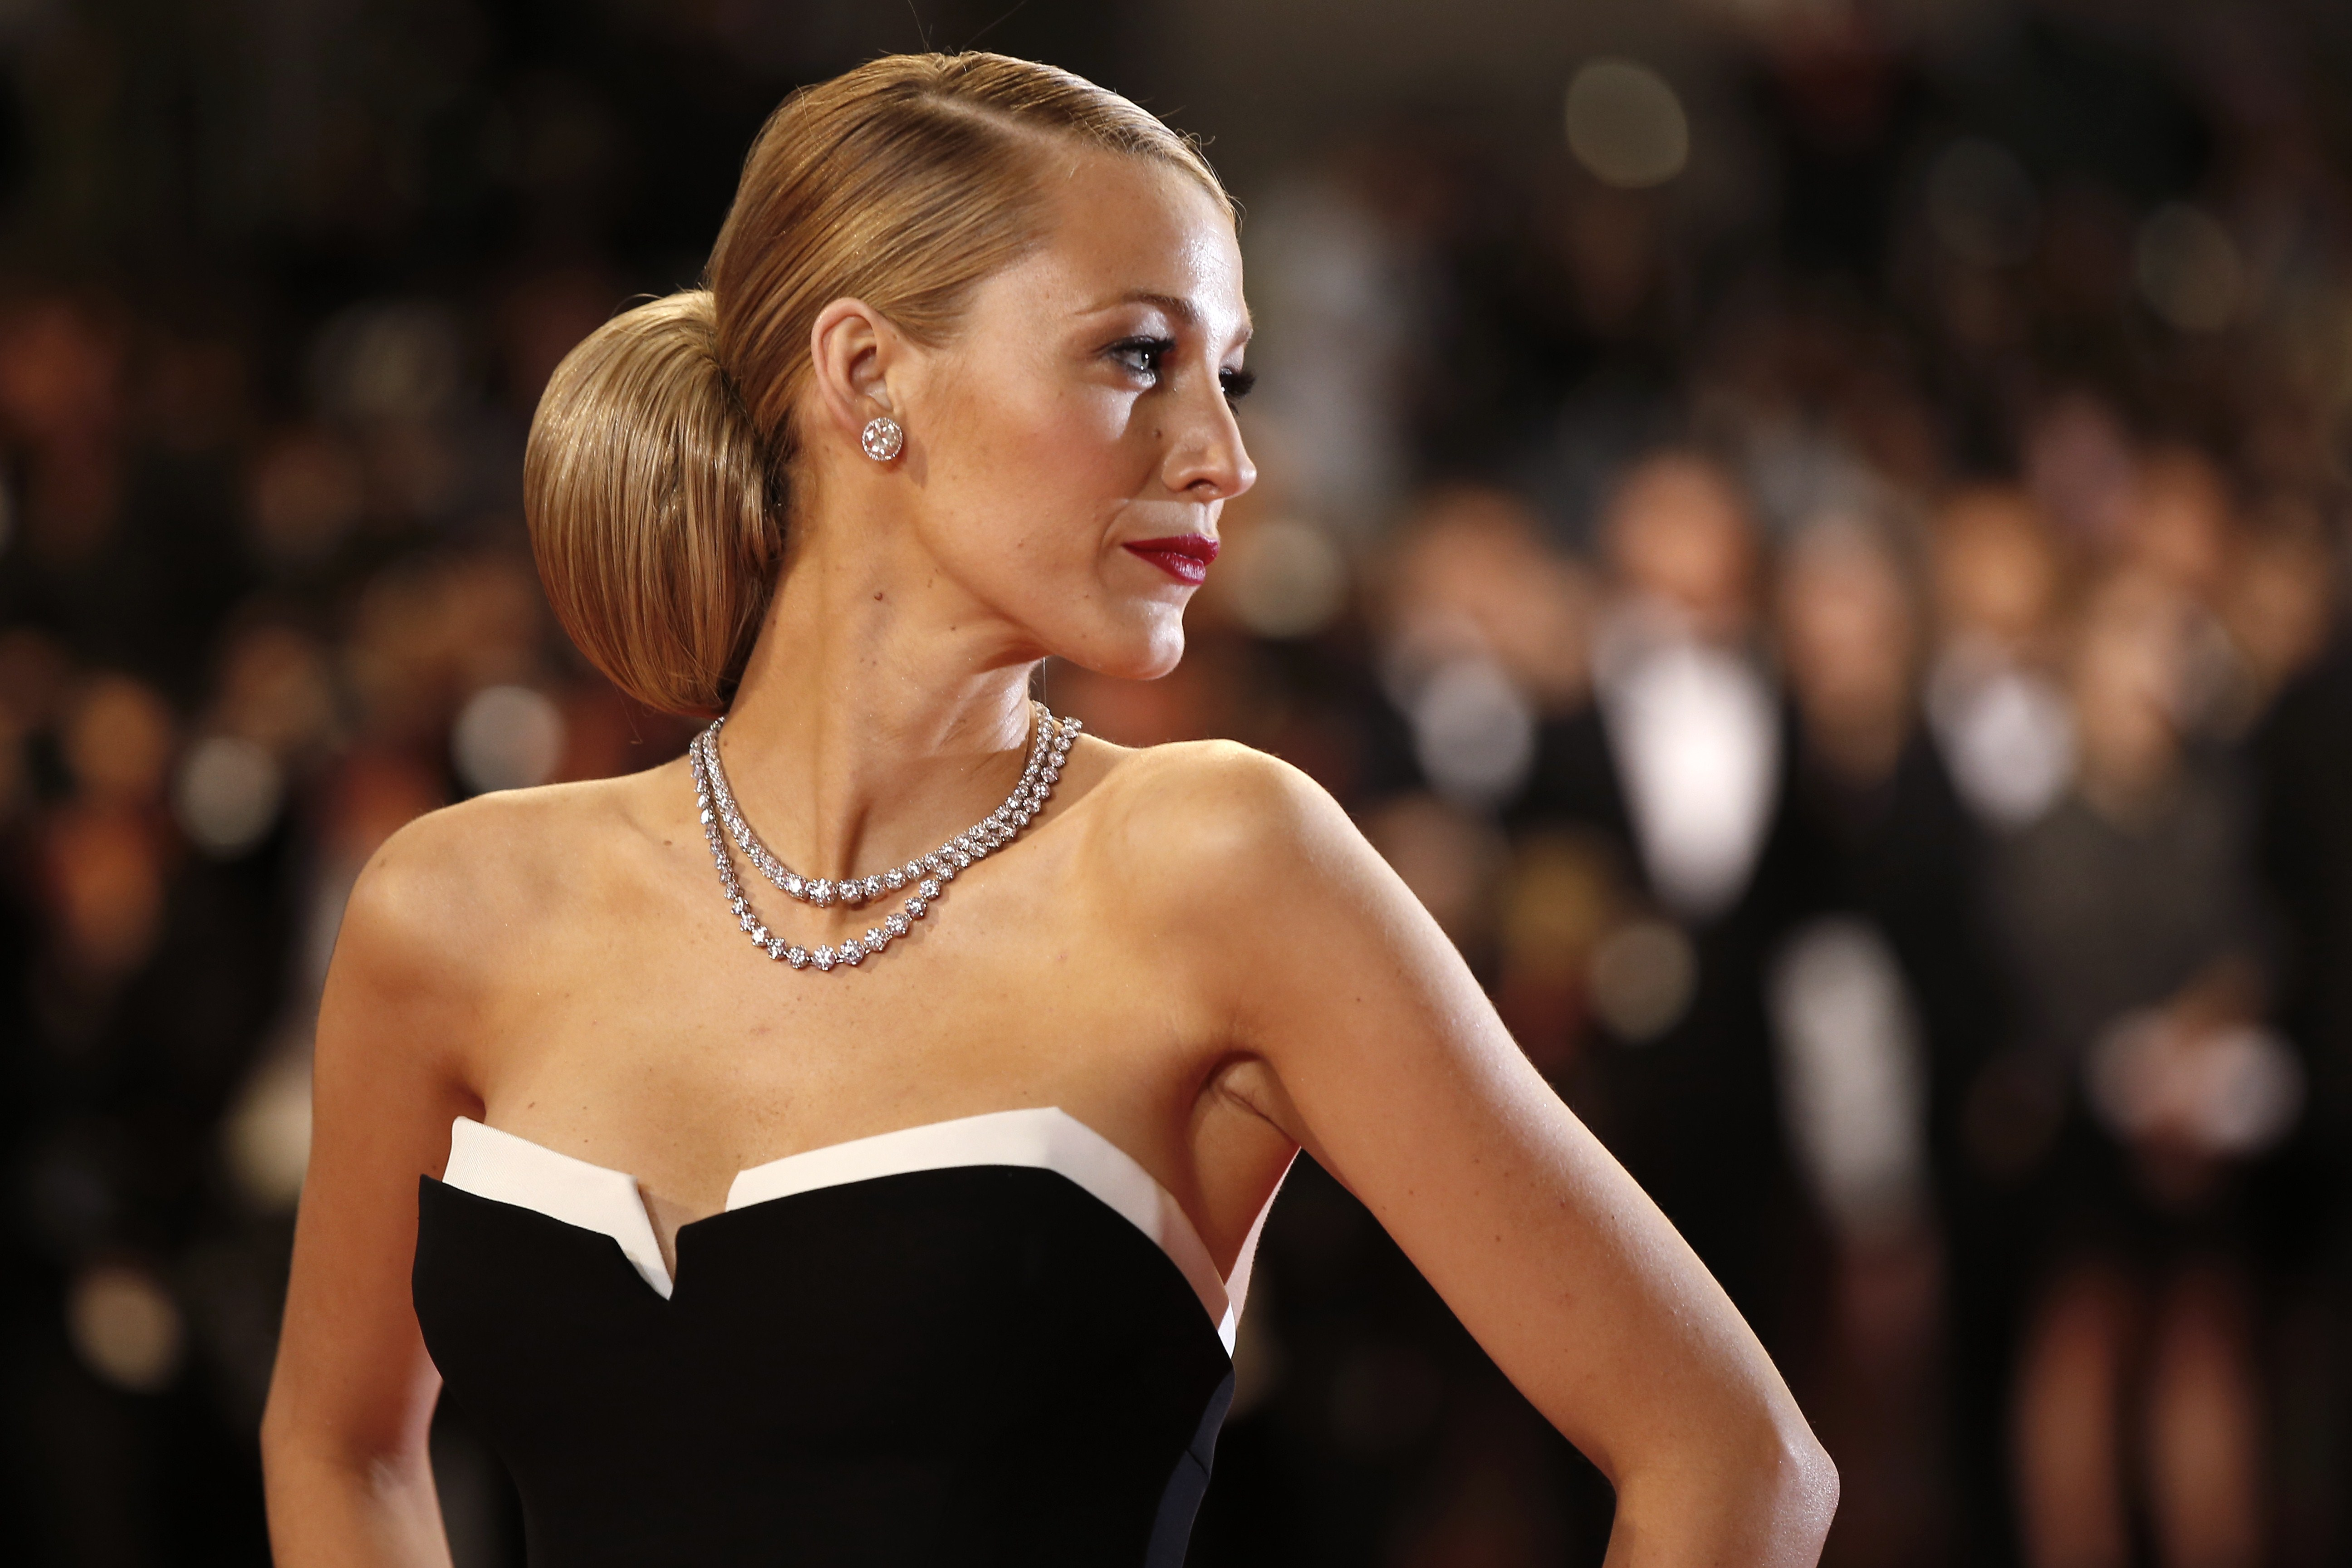 US actress Blake Lively poses as she arrives for the screening of the film  Captives  at the 67th edition of the Cannes Film Festival in Cannes, southern France, on May 16, 2014. VALERY HACHE--AFP/Getty Images